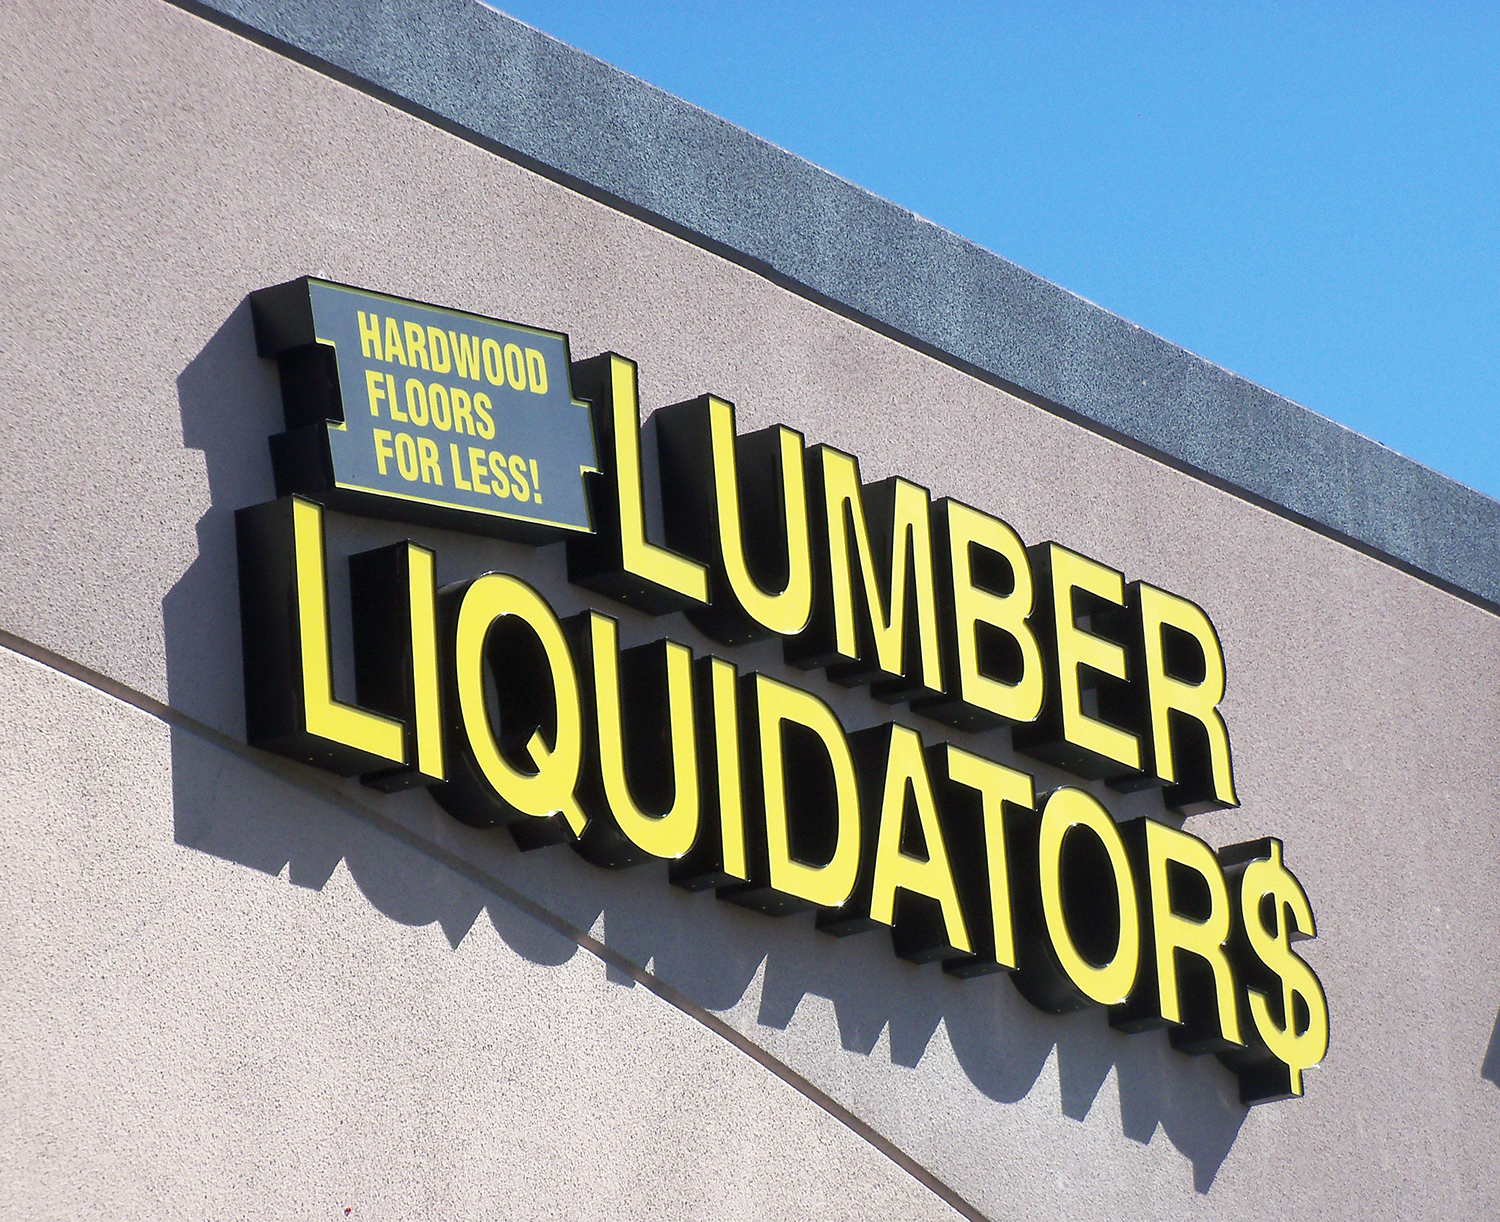 Channel Letter sign for Lumber Liquidators, Livermore CA